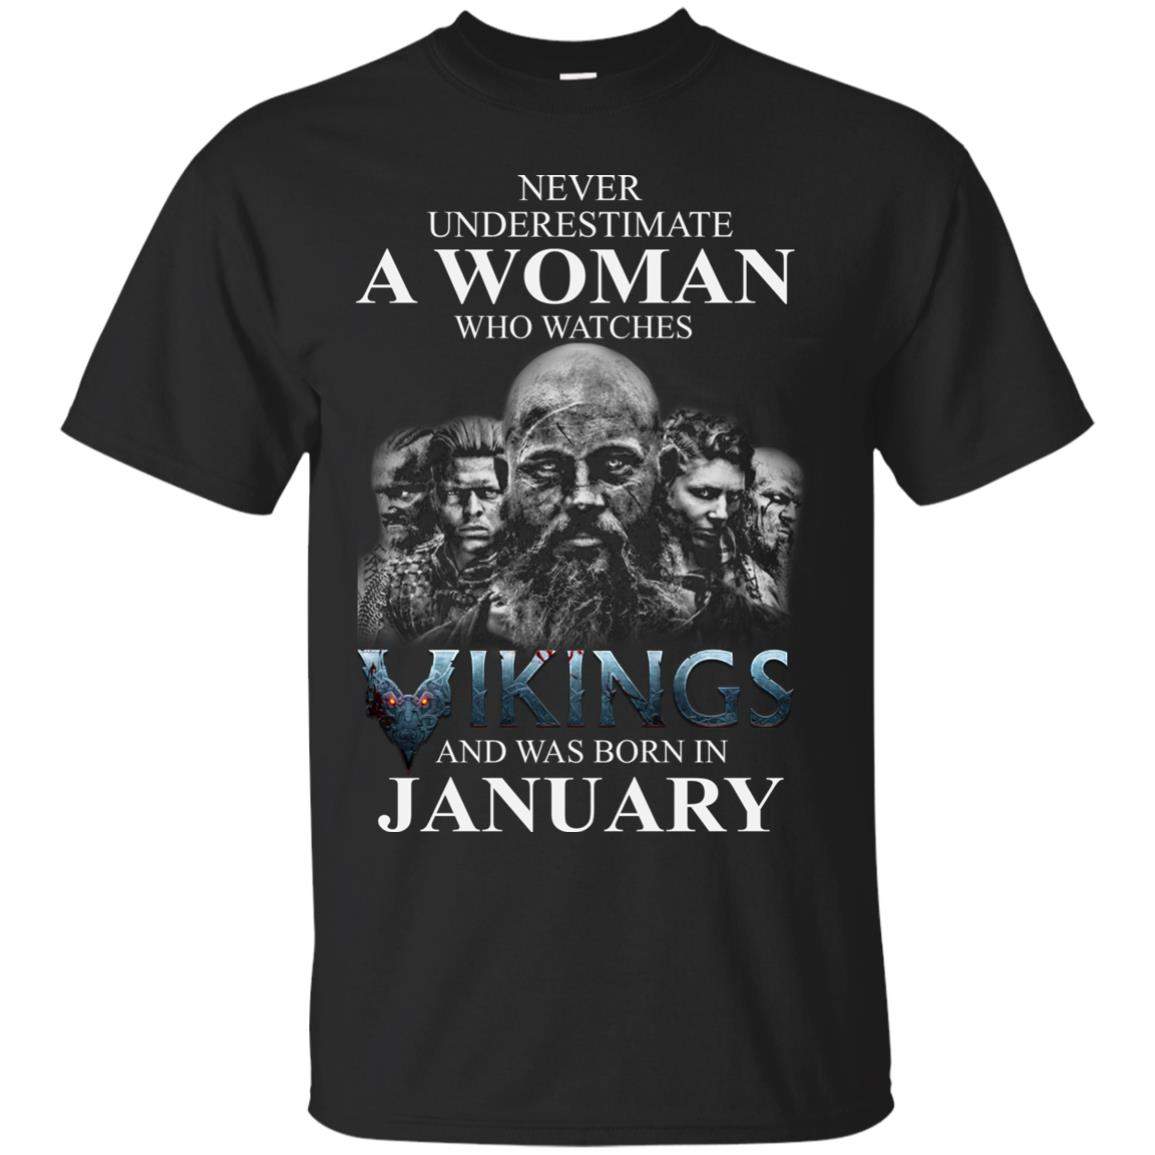 image 1351 - Never Underestimate A woman who watches Vikings and was born in January shirt